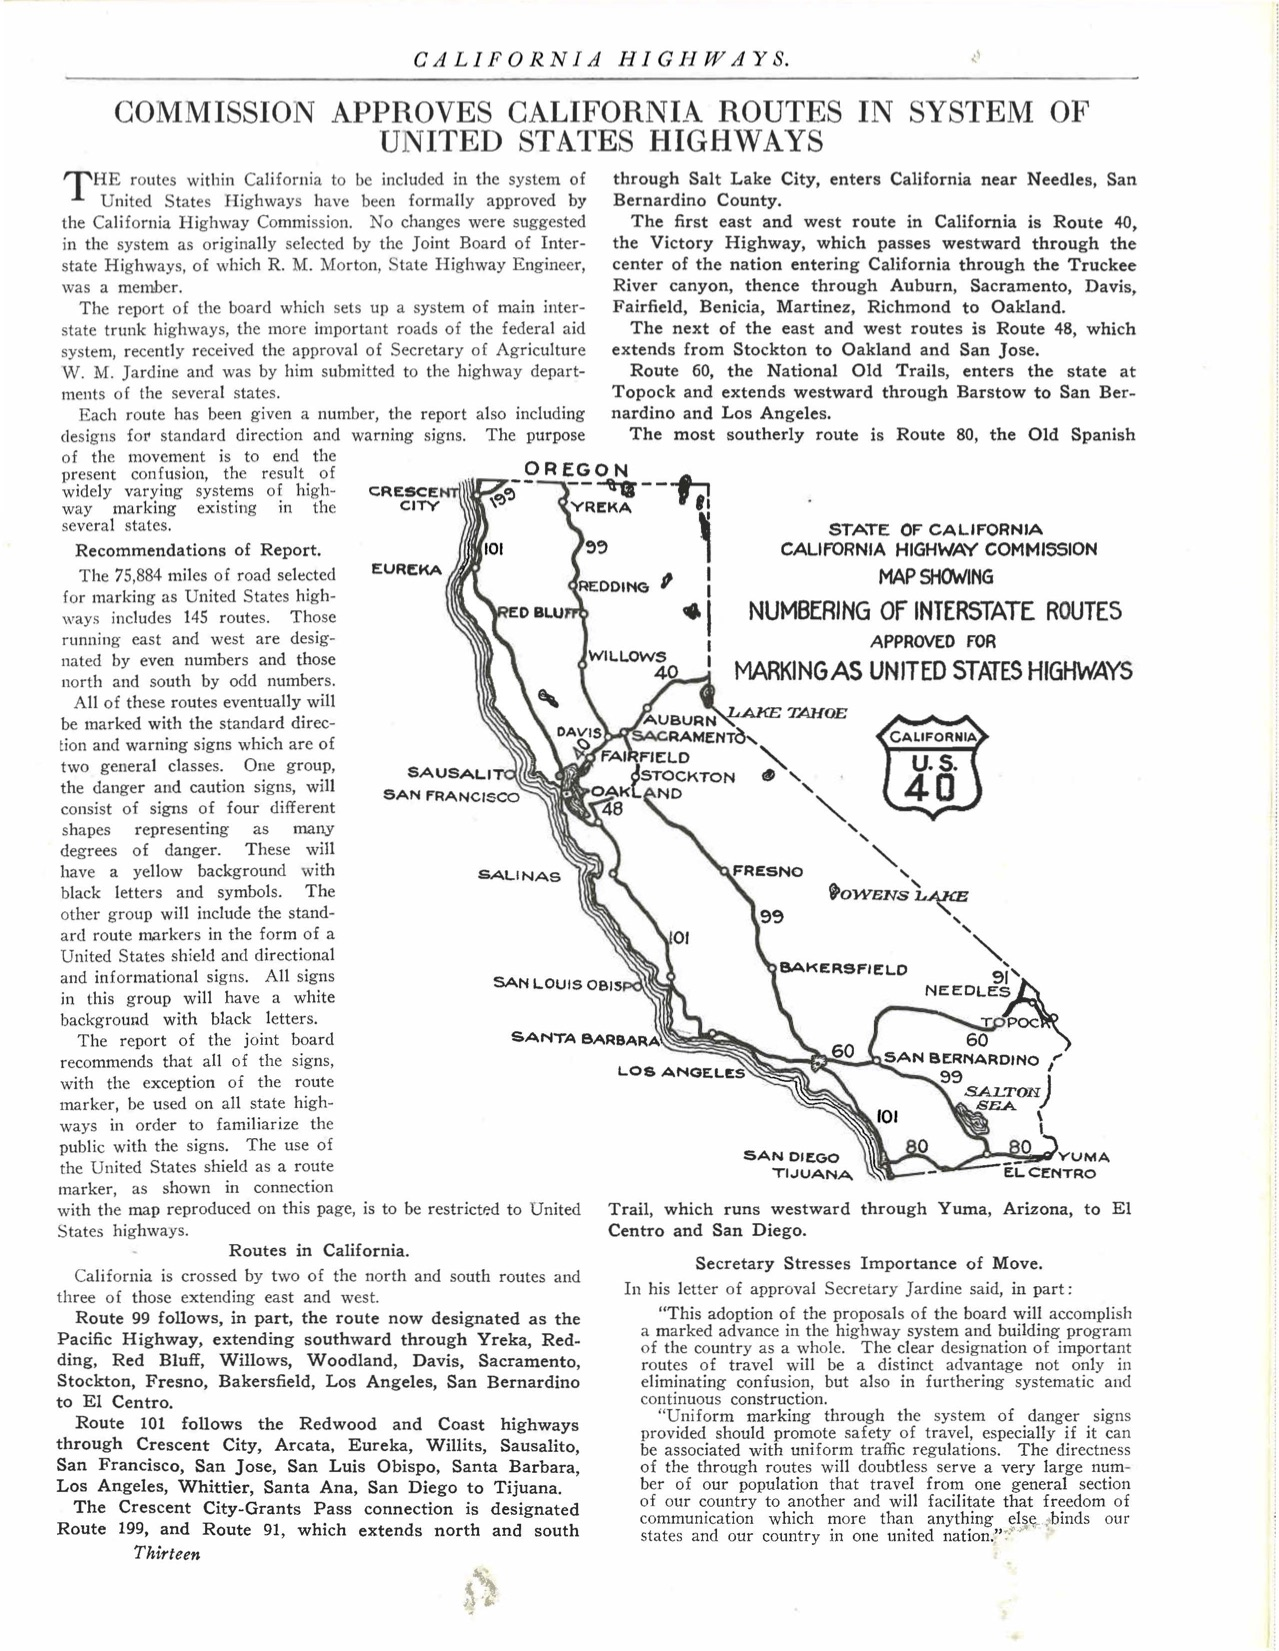 The journal California Highways announced the new US numbered highway system in its 1926 edition. Courtesy of the Metro Transportation Library and Archive.